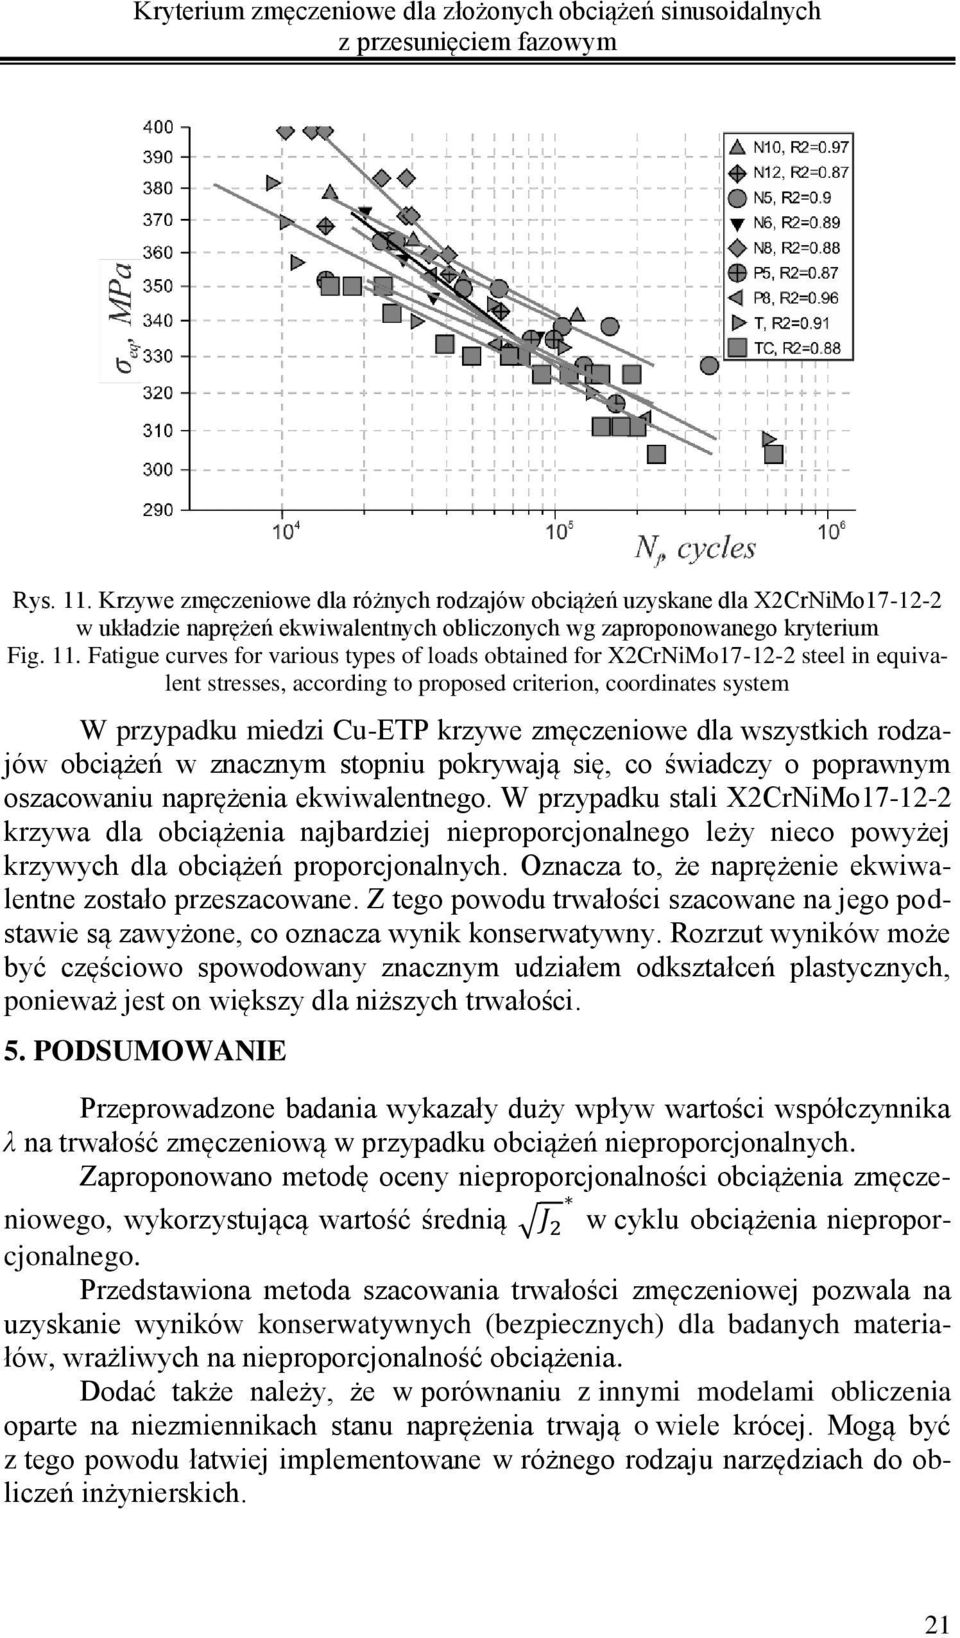 Fatigue curves for various types of loads obtained for X2CrNiMo17-12-2 steel in equivalent stresses, according to proposed criterion, coordinates system W przypadku miedzi Cu-ETP krzywe zmęczeniowe